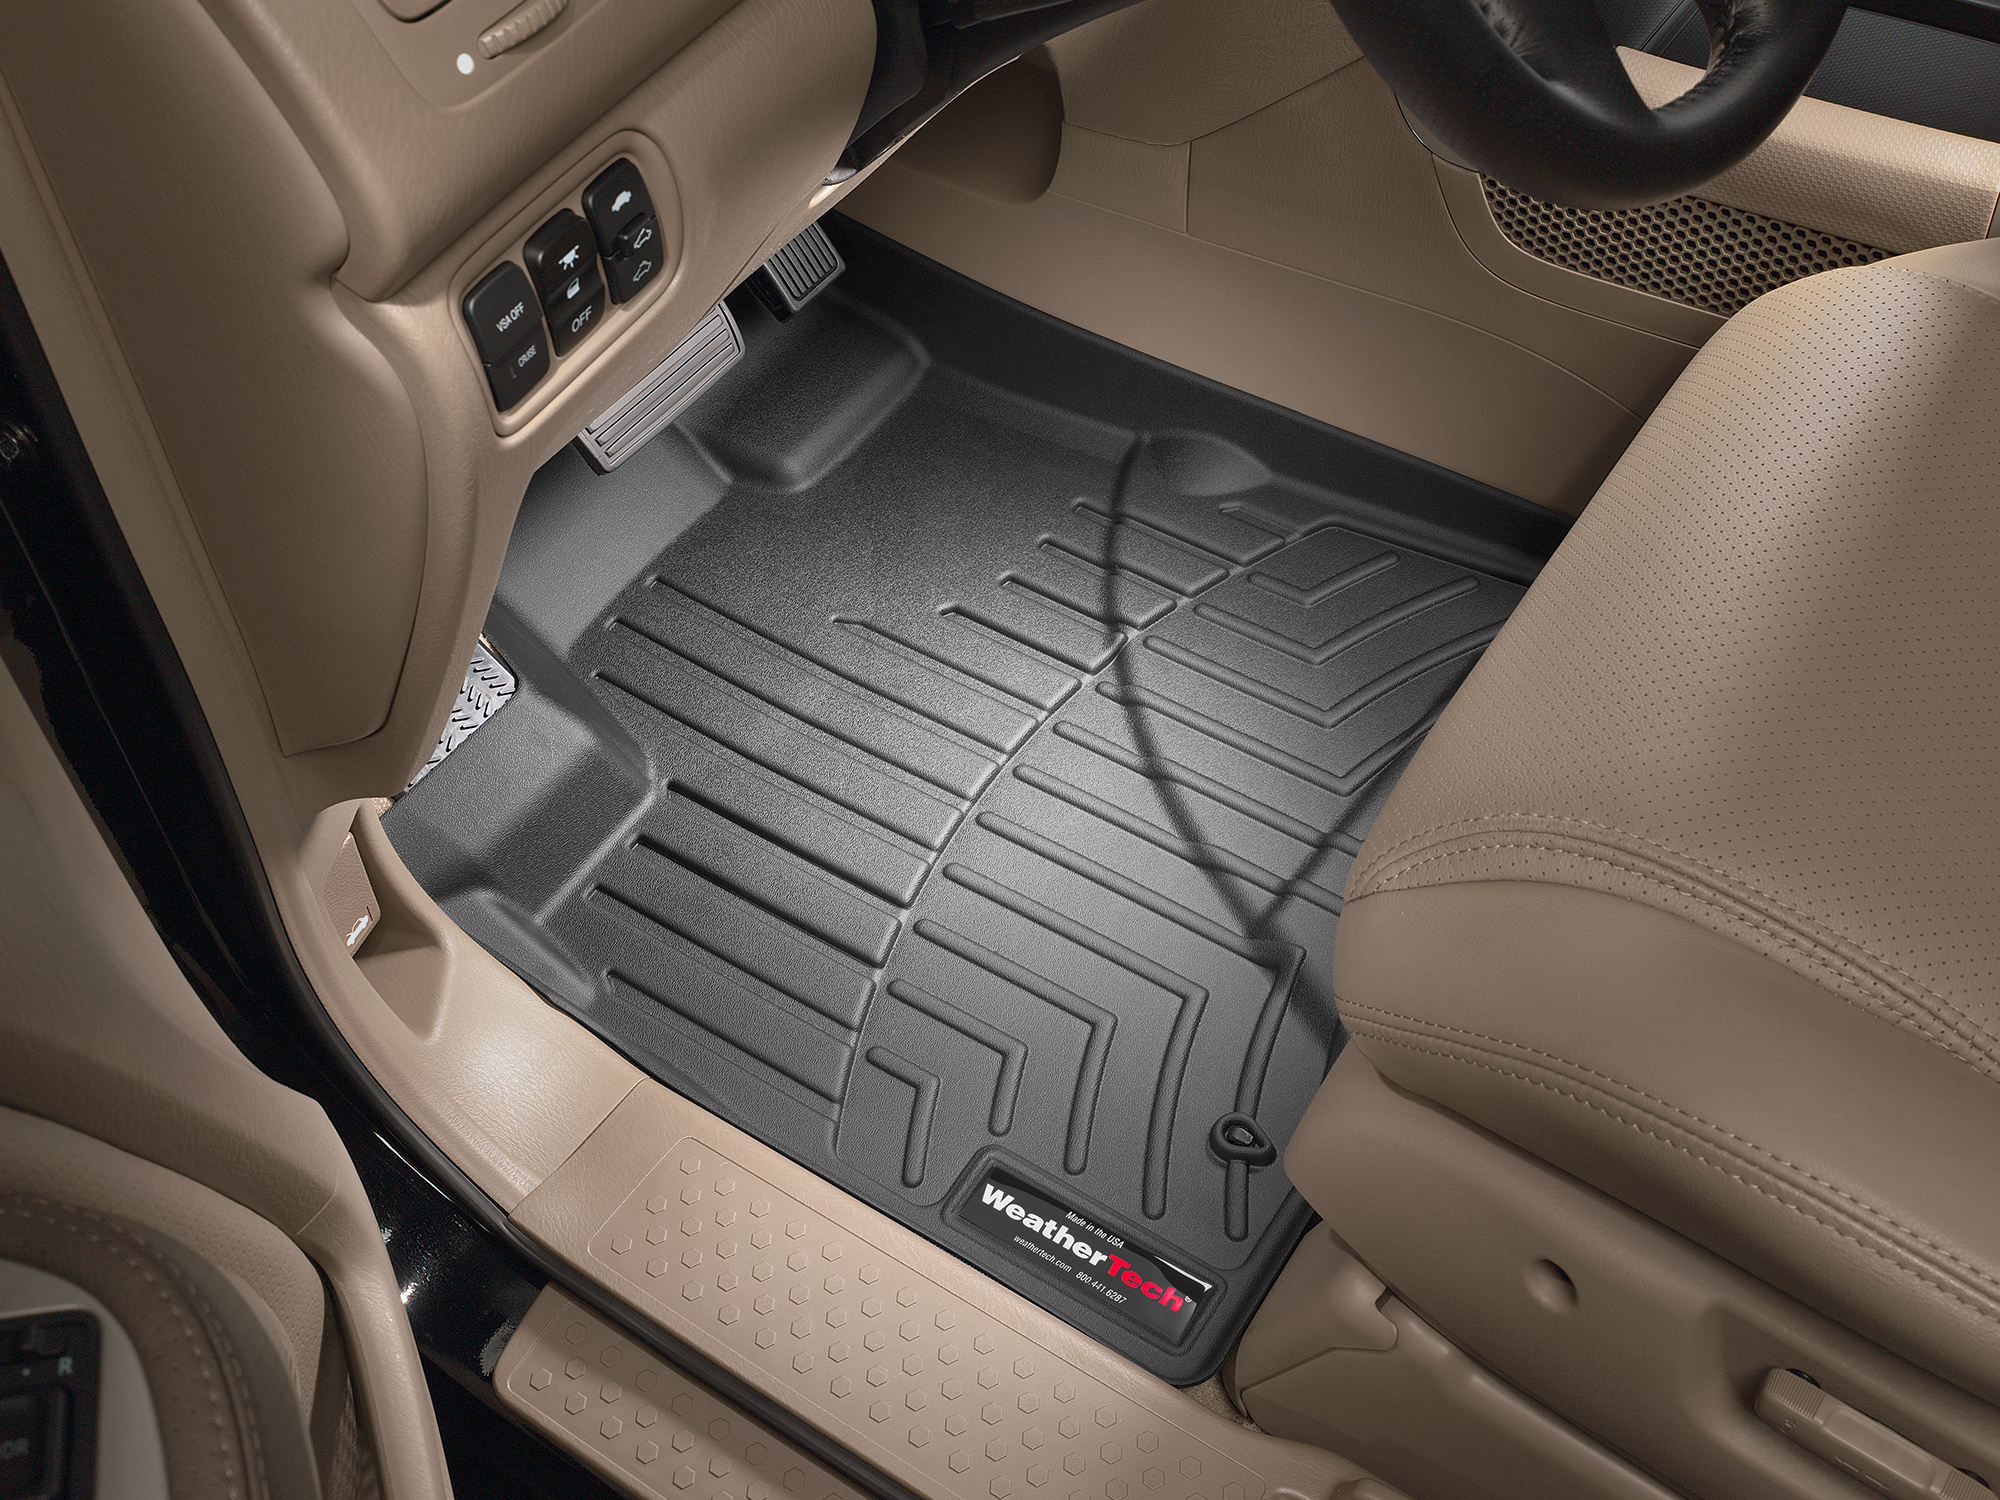 floor black weathertech molded row car mpn silverado chev liners mats digitalfit laser